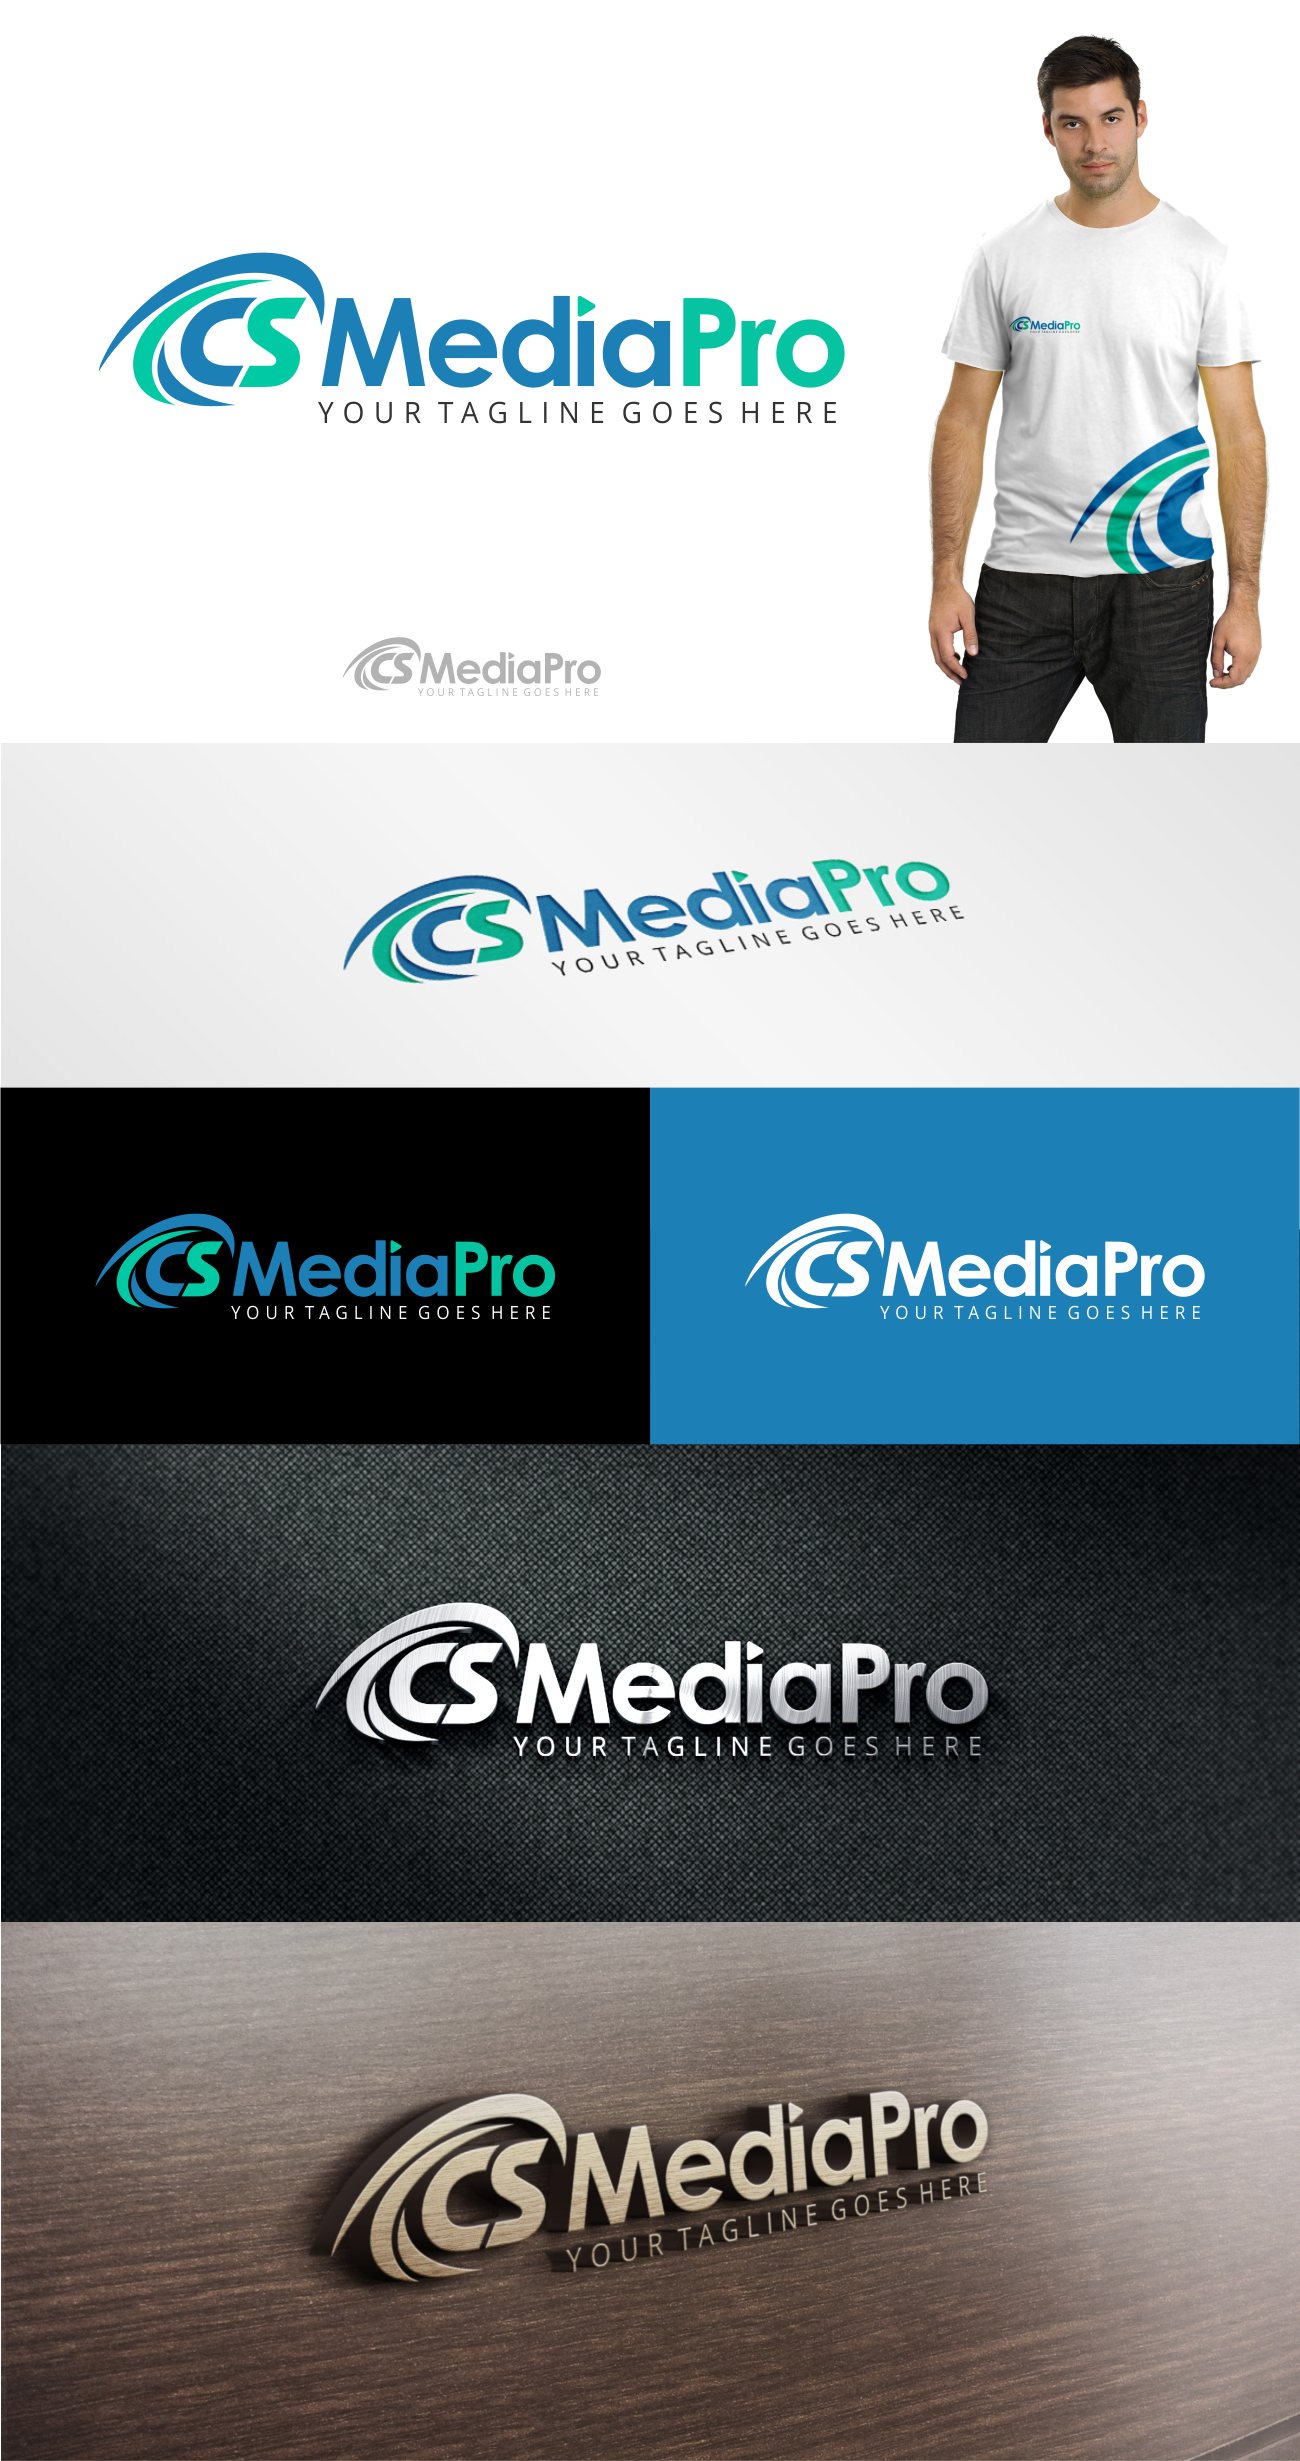 Create an updated logo for CSMediaPro